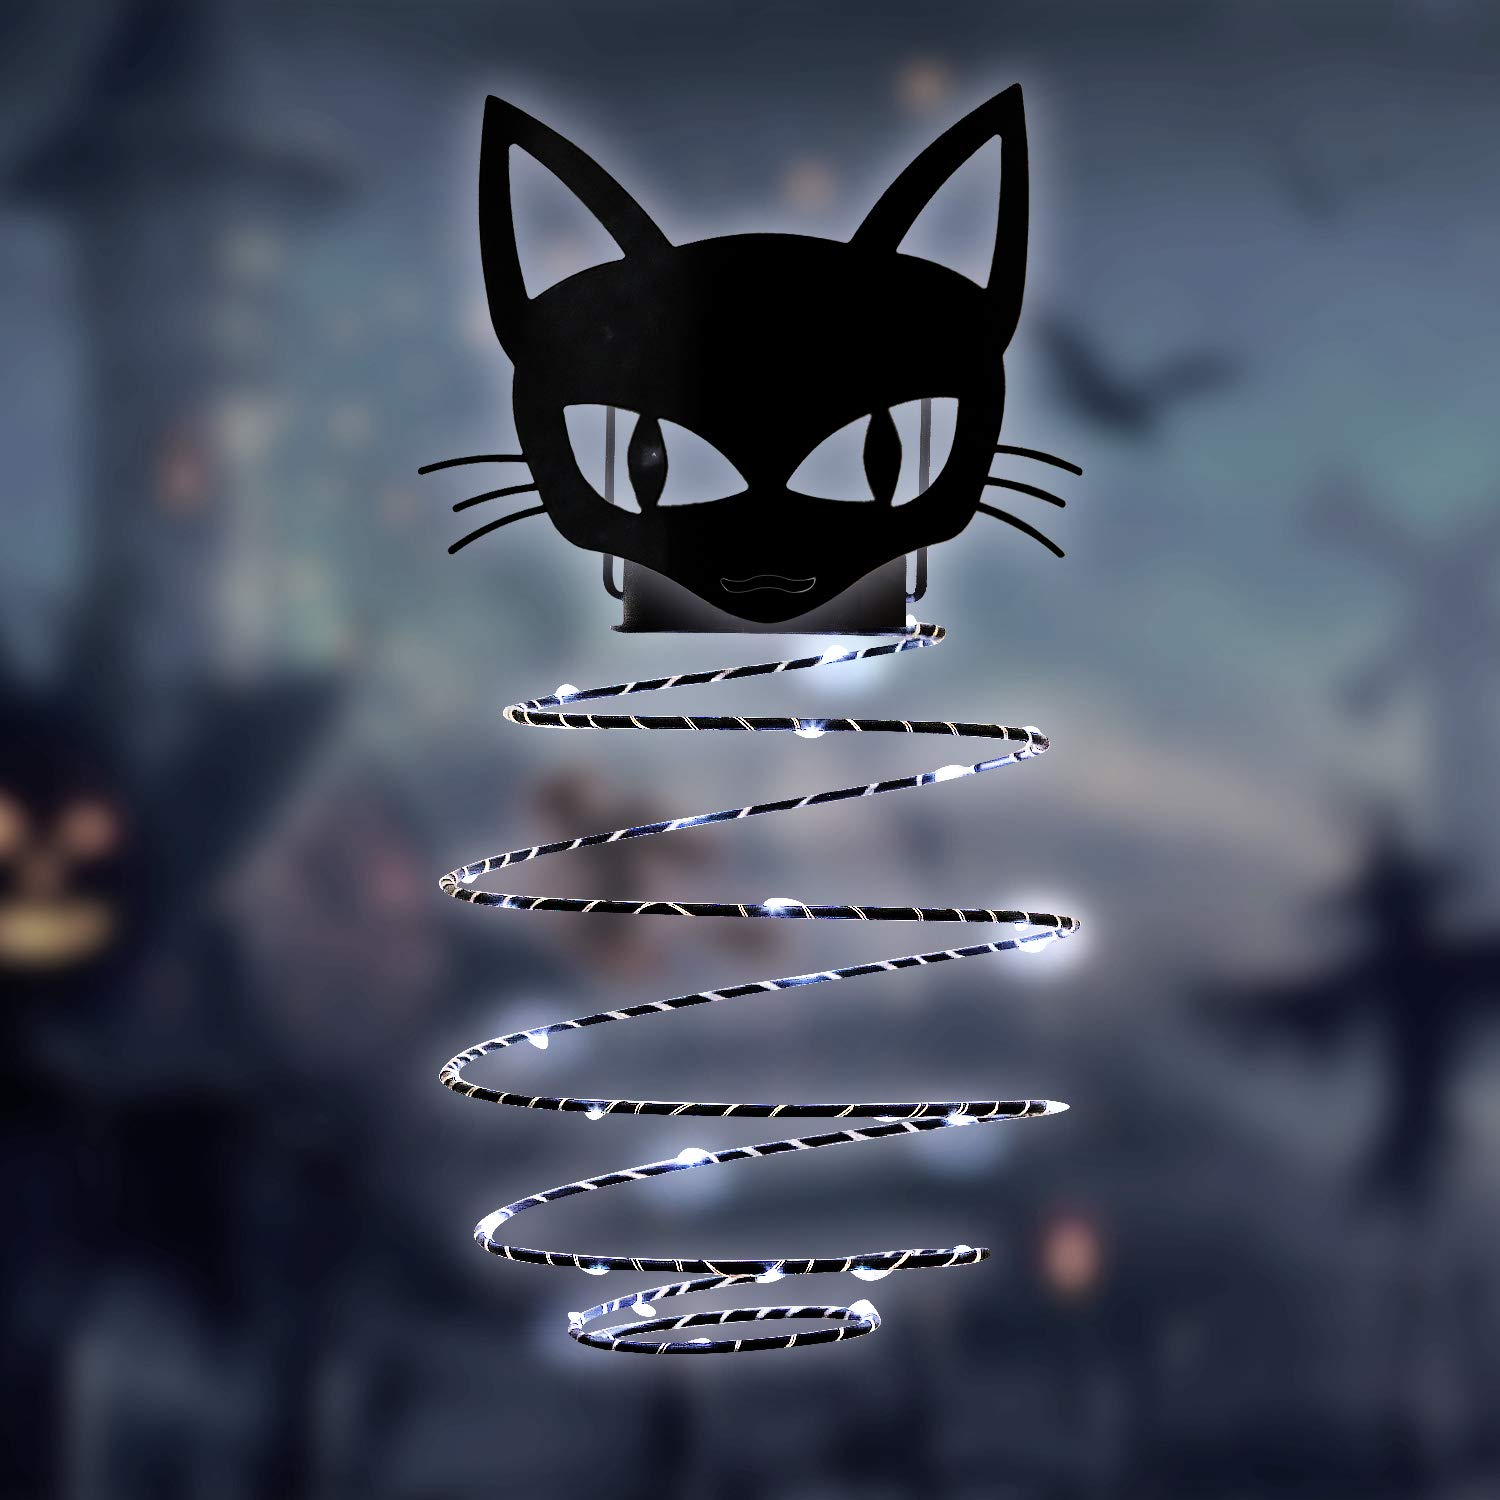 GiveU Black Cat Solar Hanging Portable Lantern Halloween Outdoor Landscape Lamp for Garden, Patio Decoration,11inches